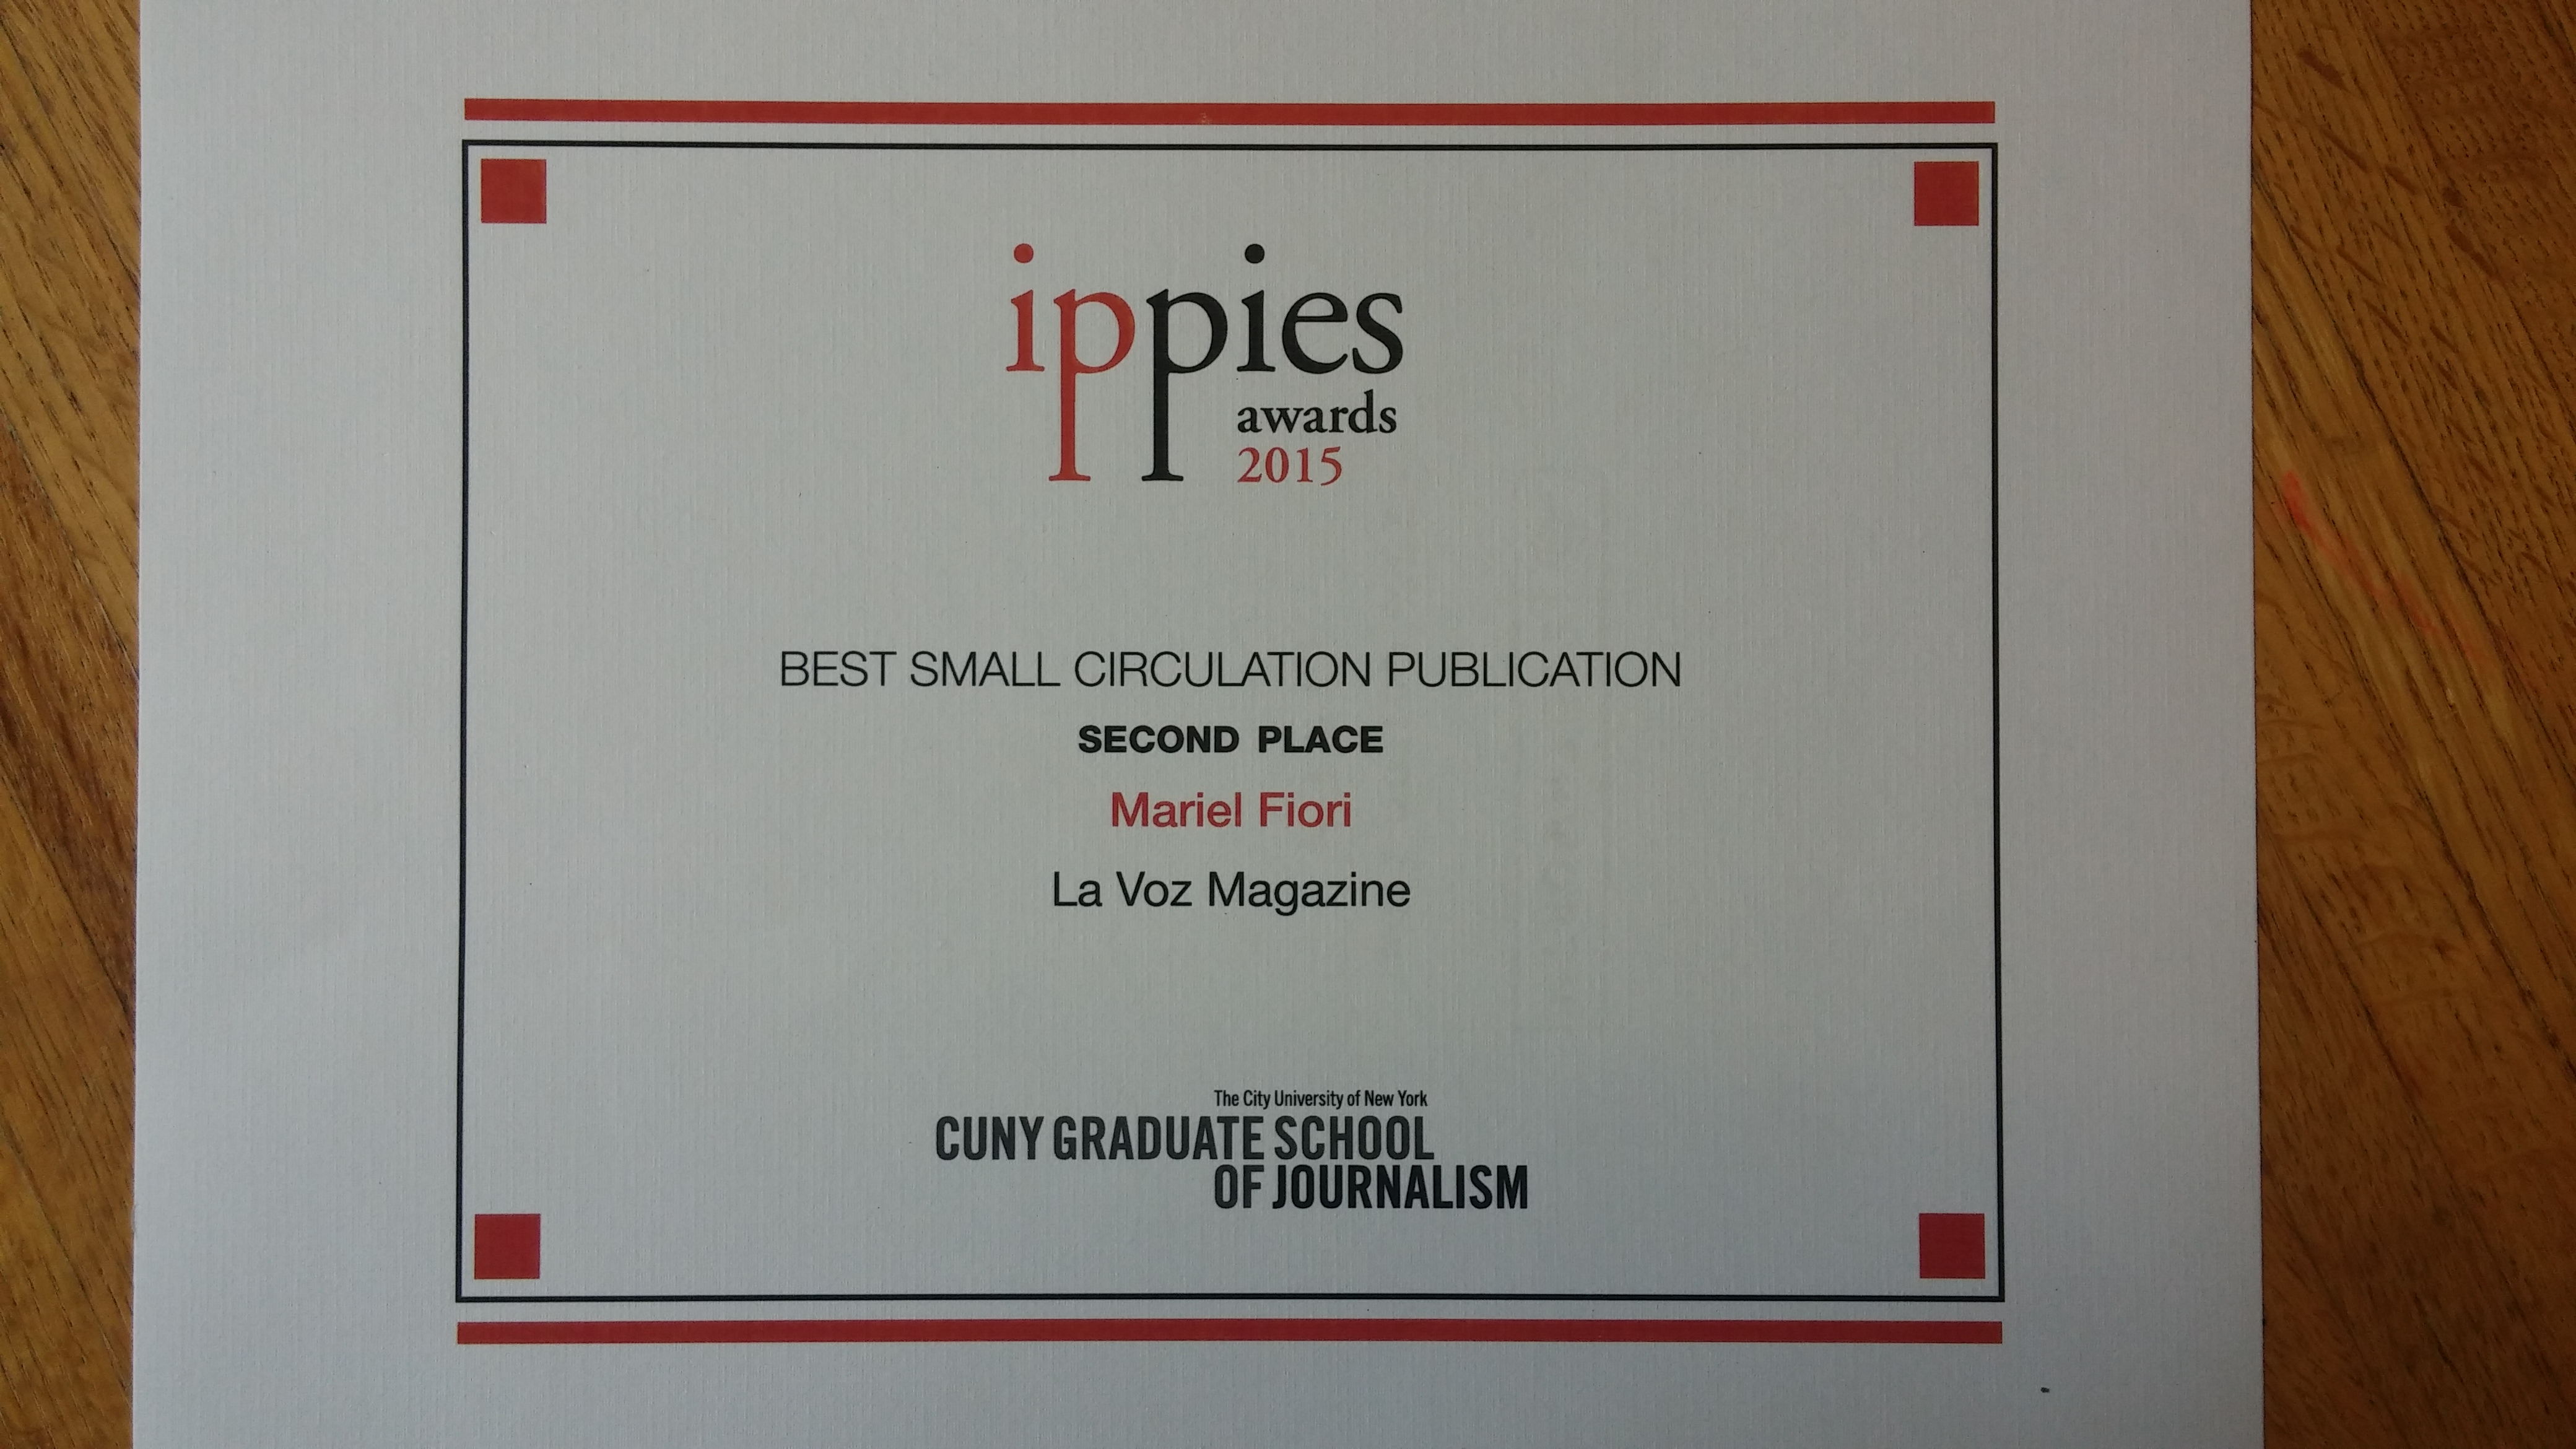 And an Ippie award goes to La Voz magazine!